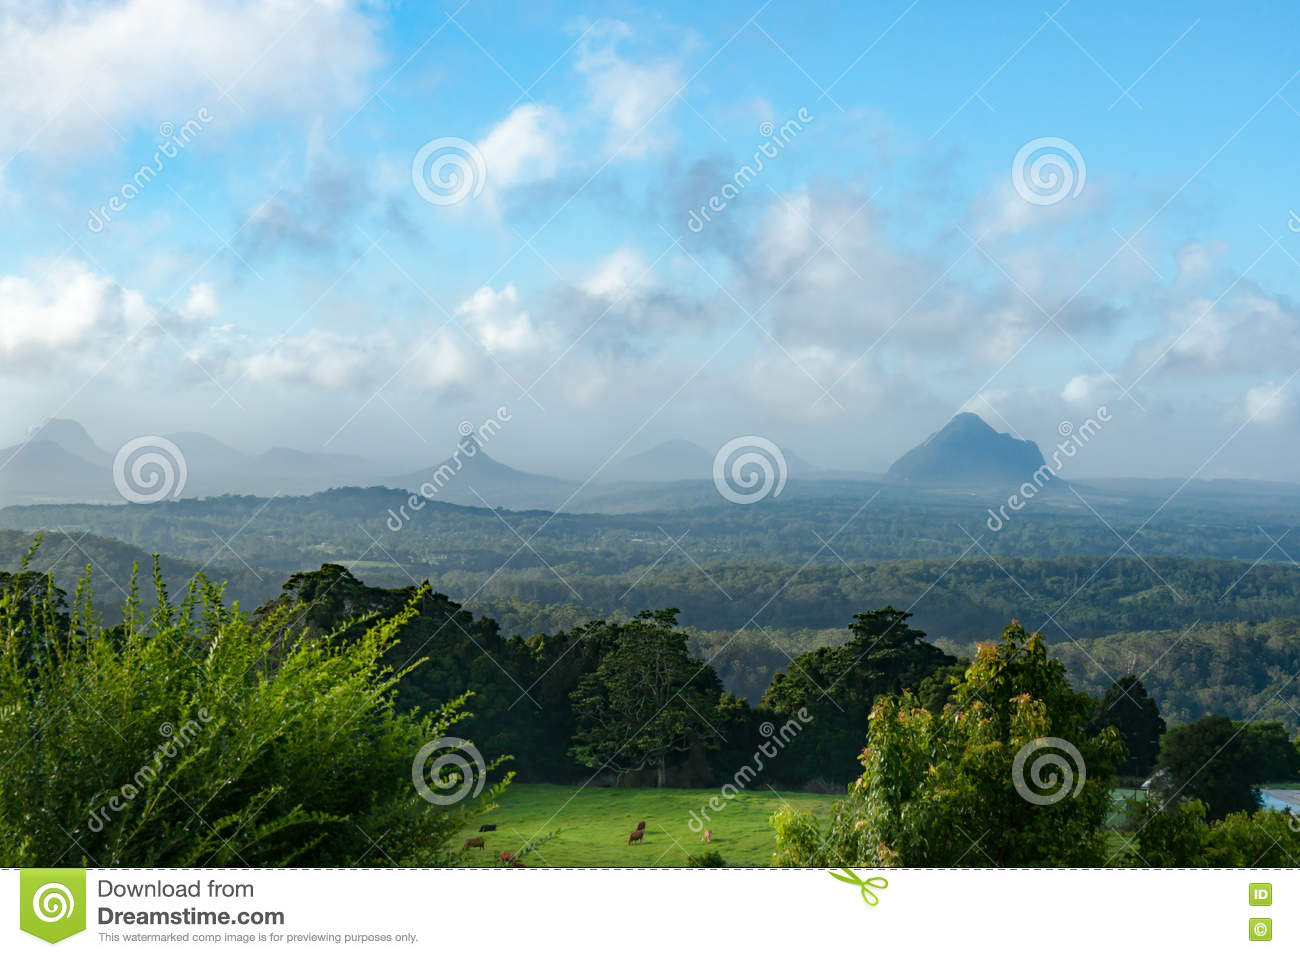 Glasshouse Mountains clipart #7, Download drawings